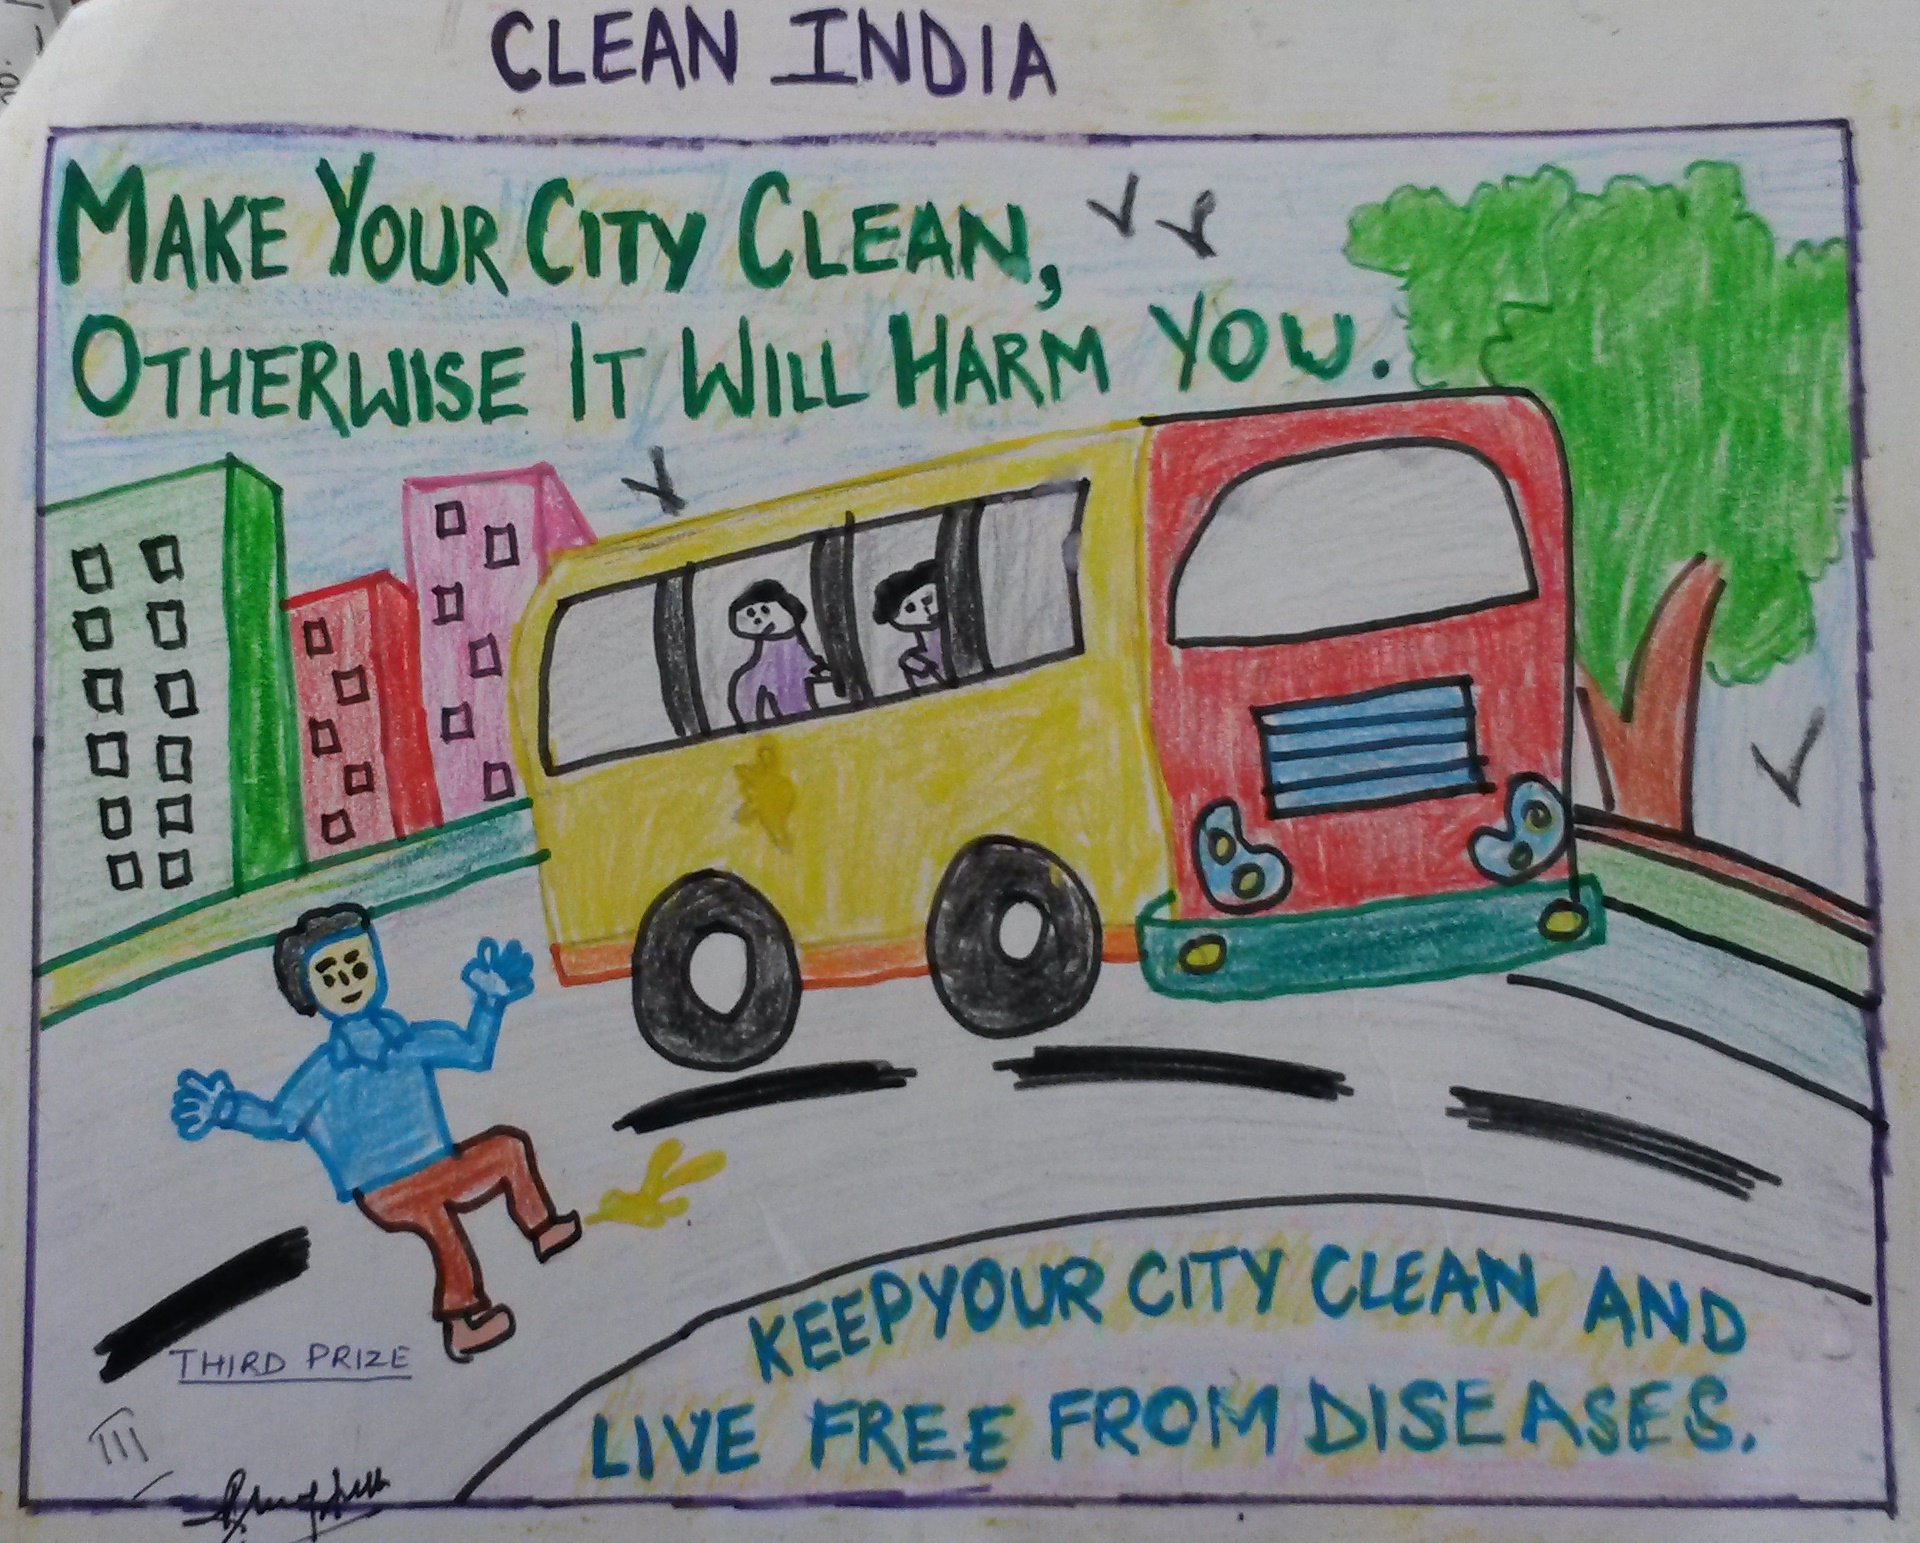 SWACHH BHARAT COMPAIGN POSTER MAKING COMPETITION